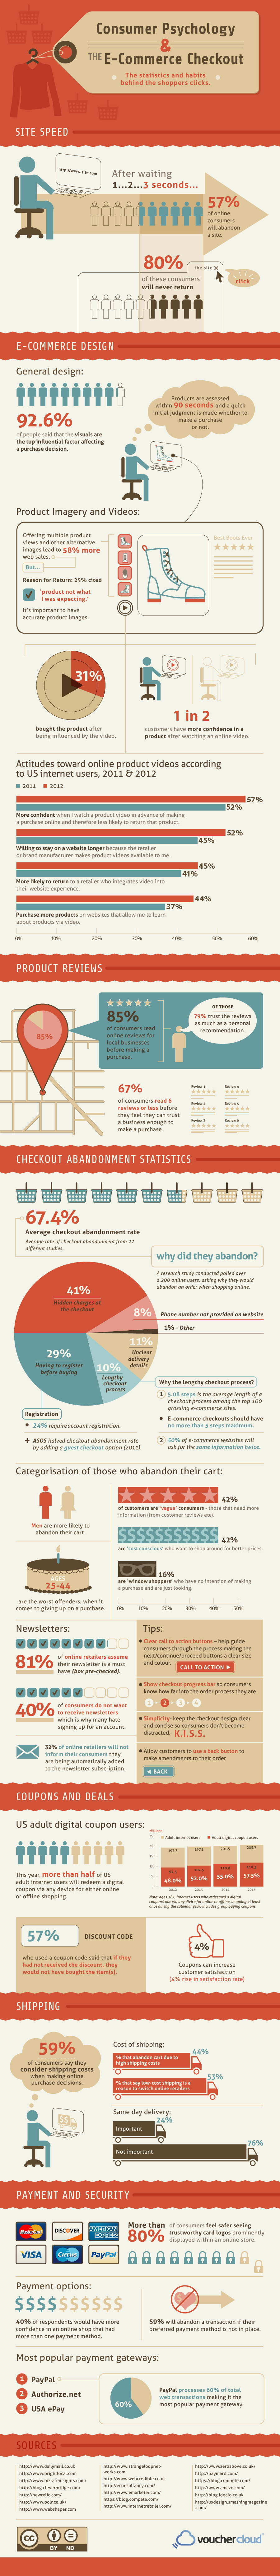 Consumer Psychology & ECommerce Checkouts Infographic